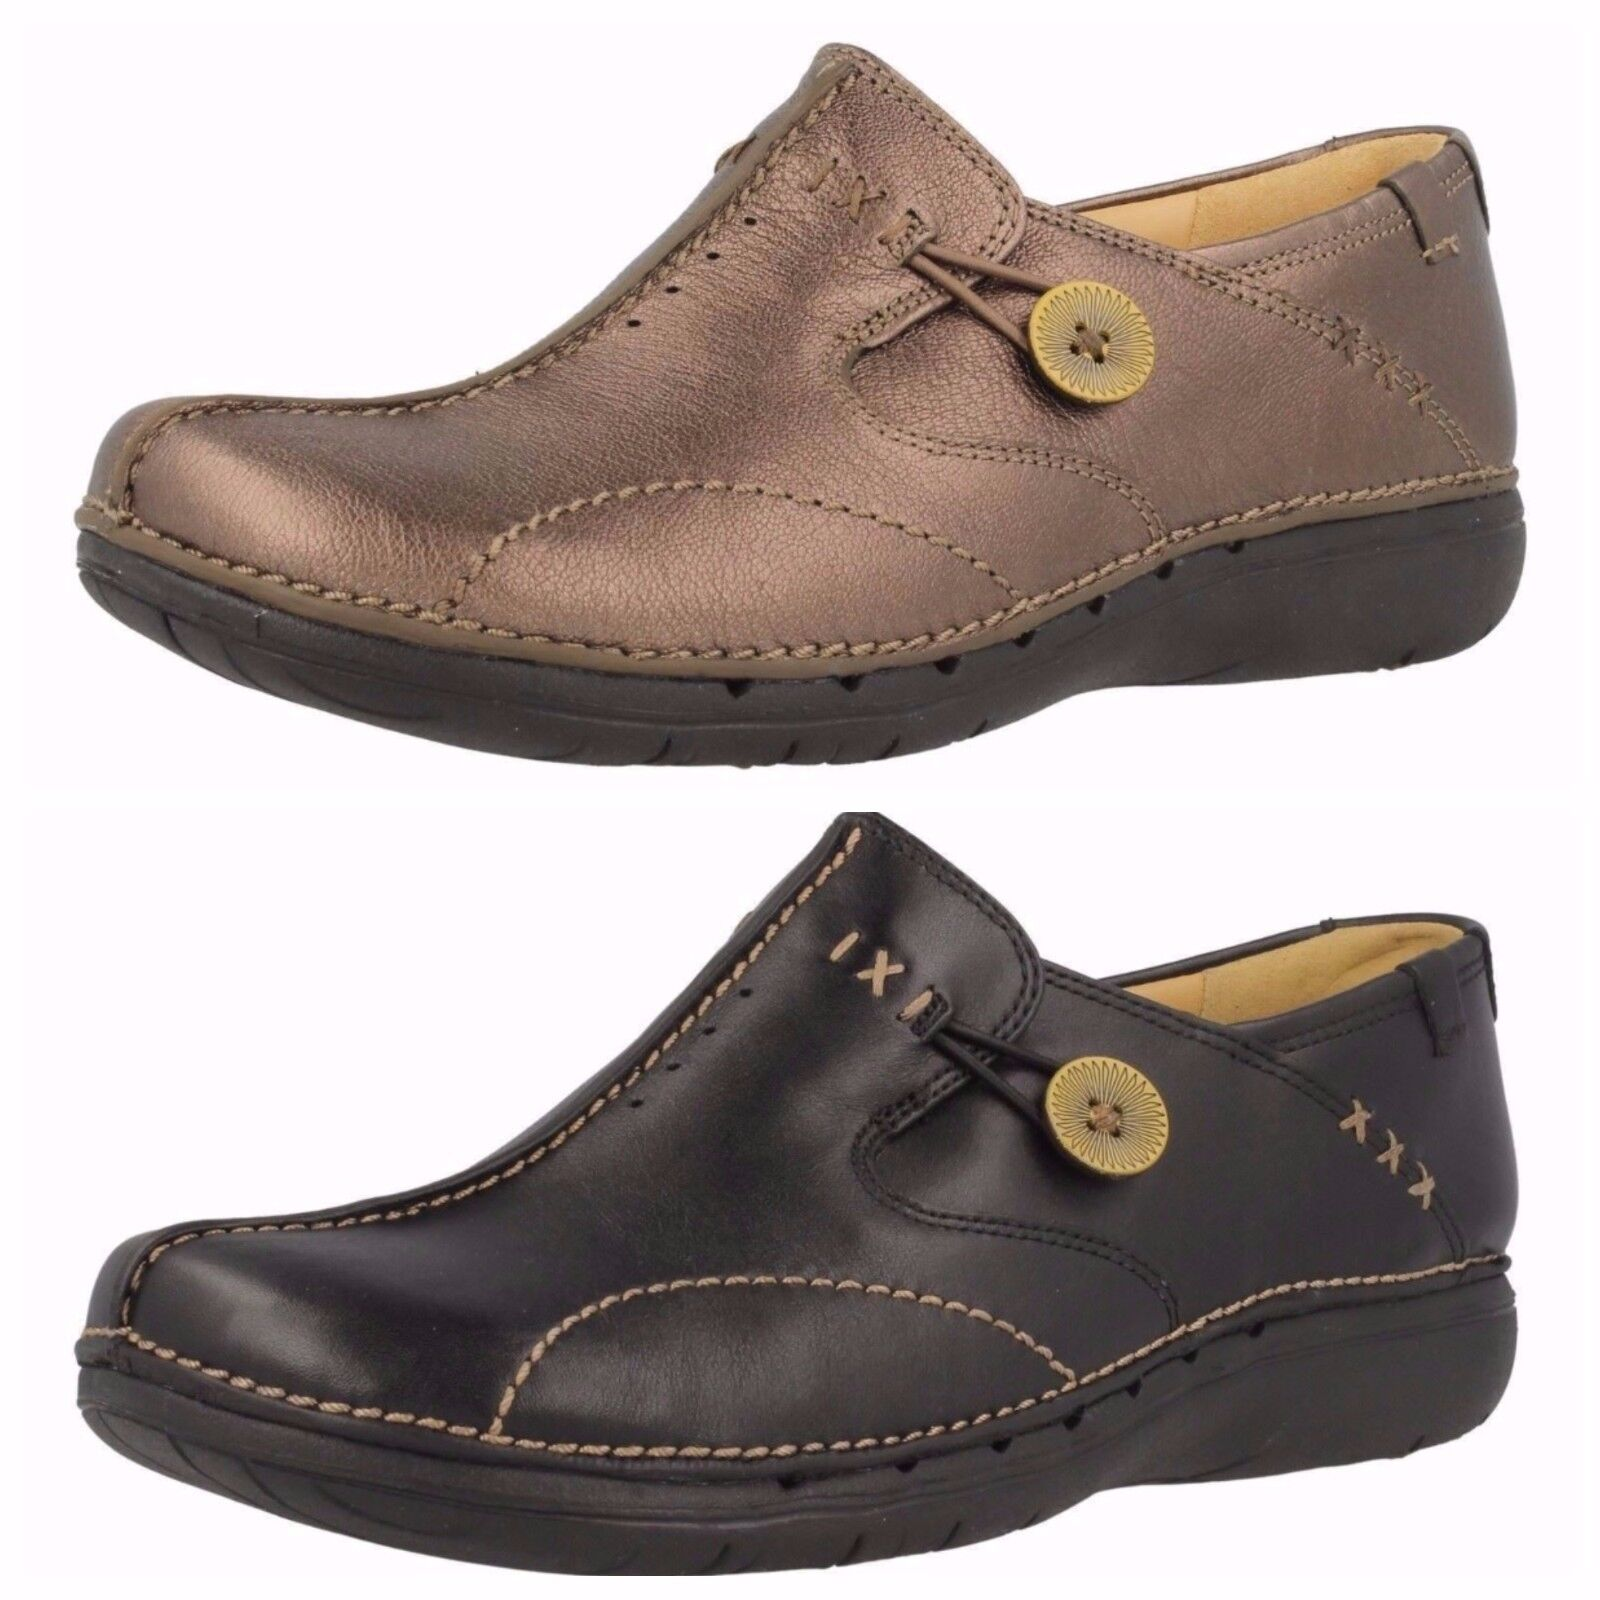 Ladies Leather Slip On Clarks- Un Loop 2 Colours- Great Price